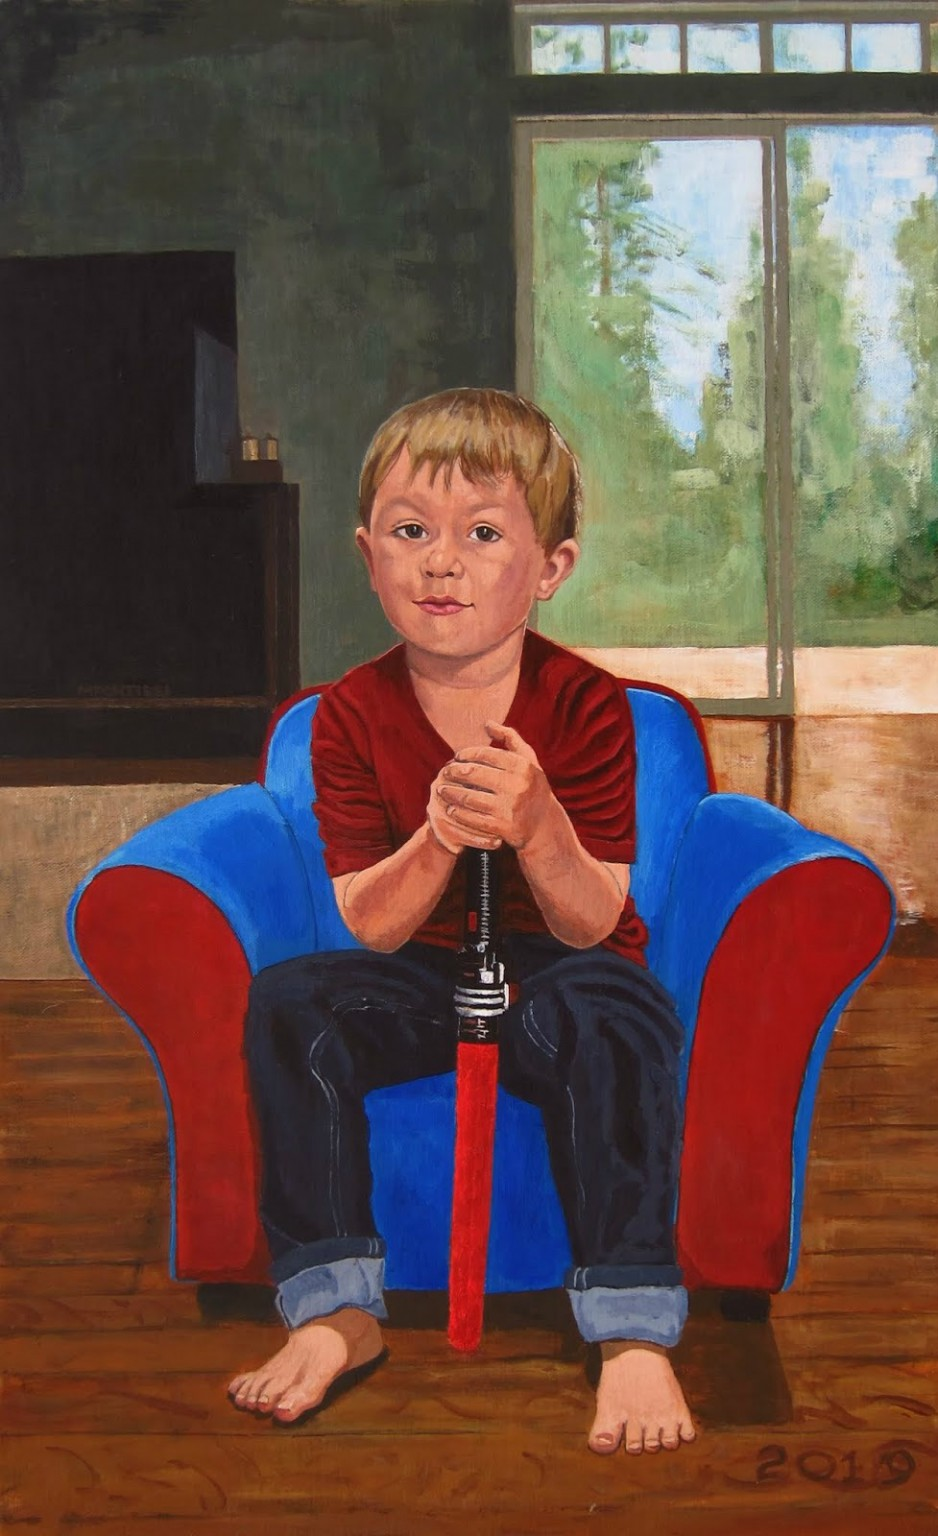 A painting of a young boy sitting in a chair, holding a lightsaber toy.